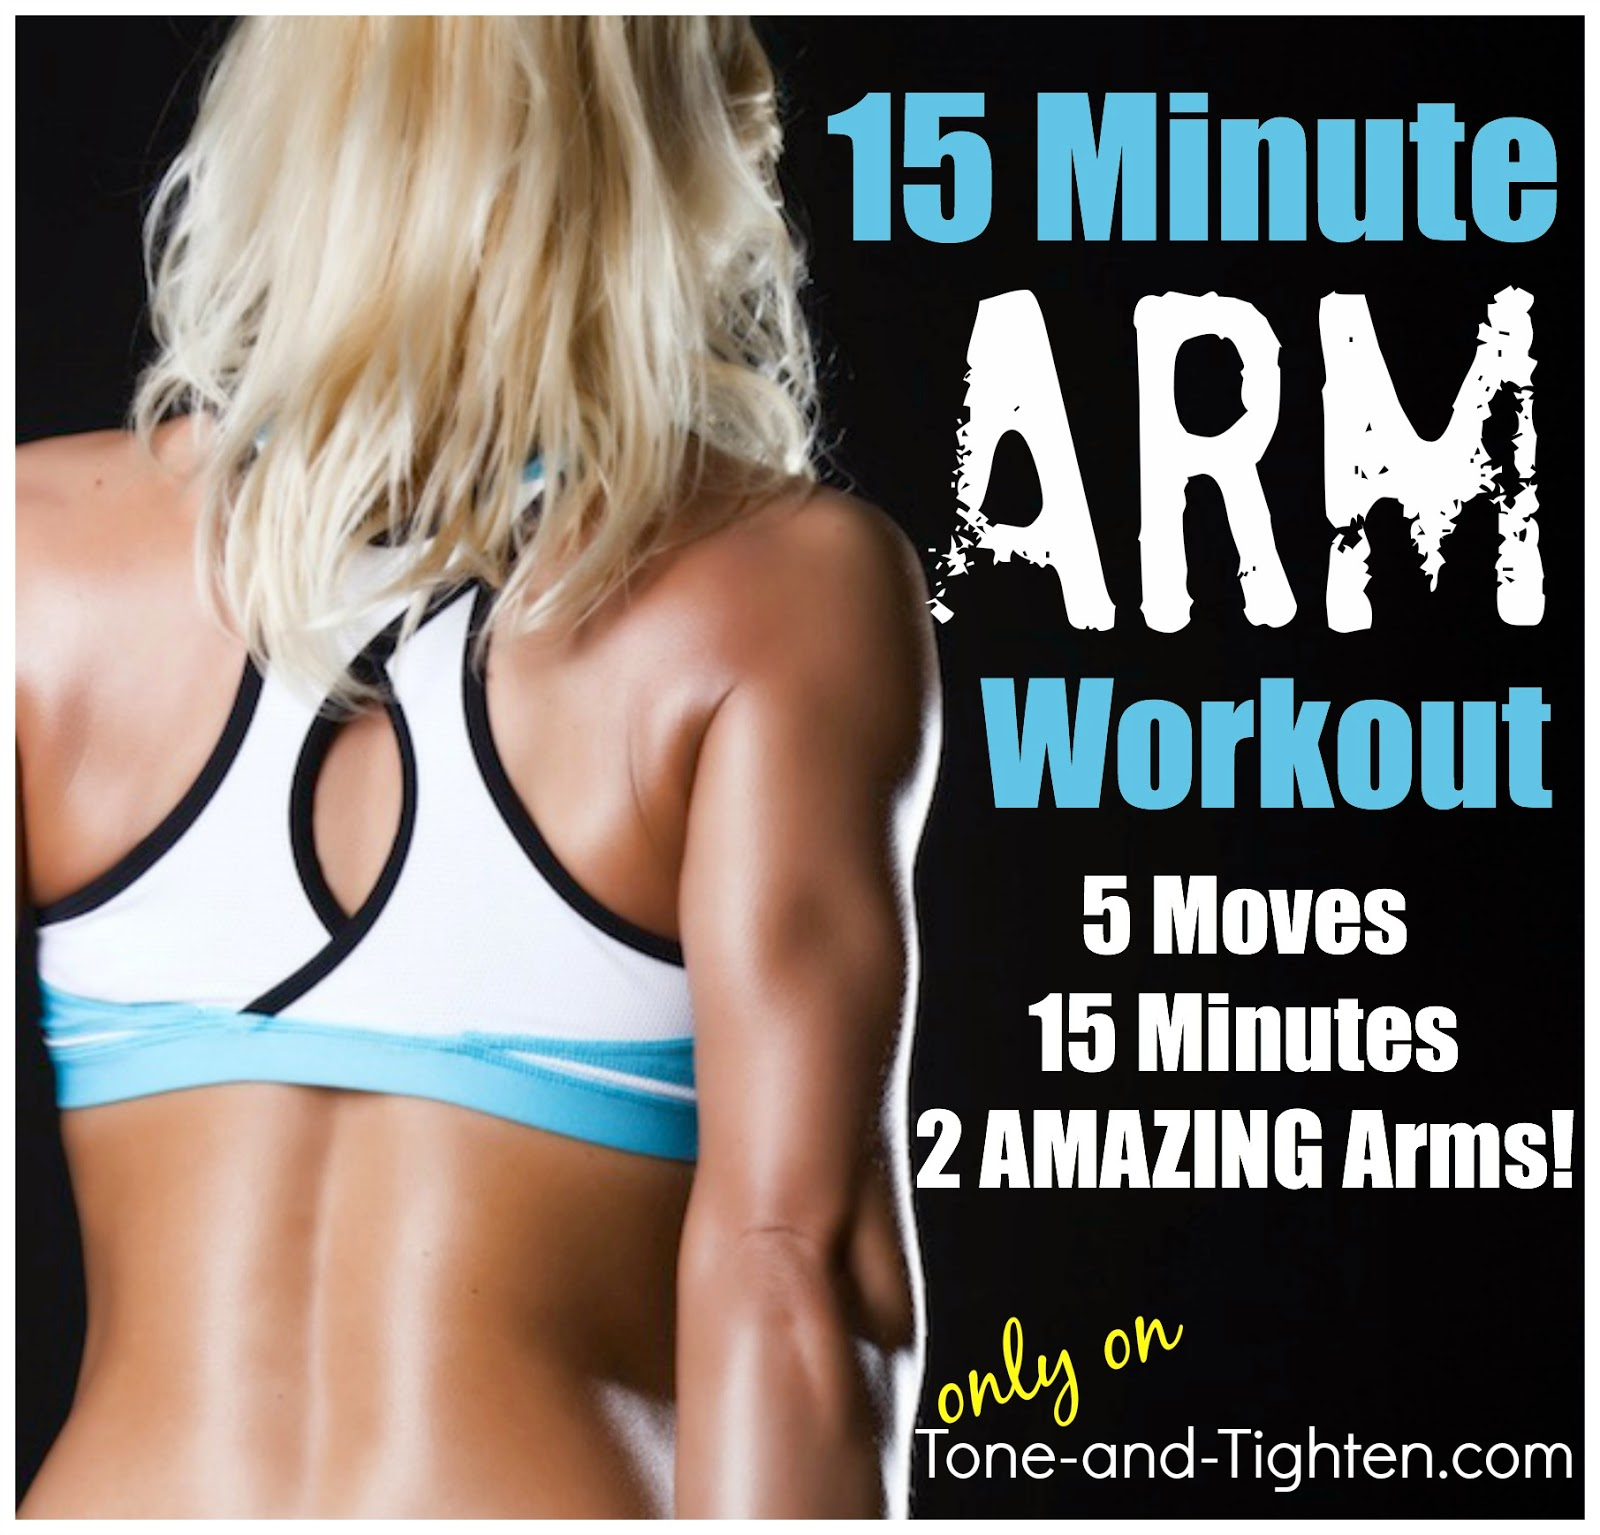 http://tone-and-tighten.com/2014/02/15-minute-at-home-arm-workout-sleek-and-sexy-arms-in-no-time.html